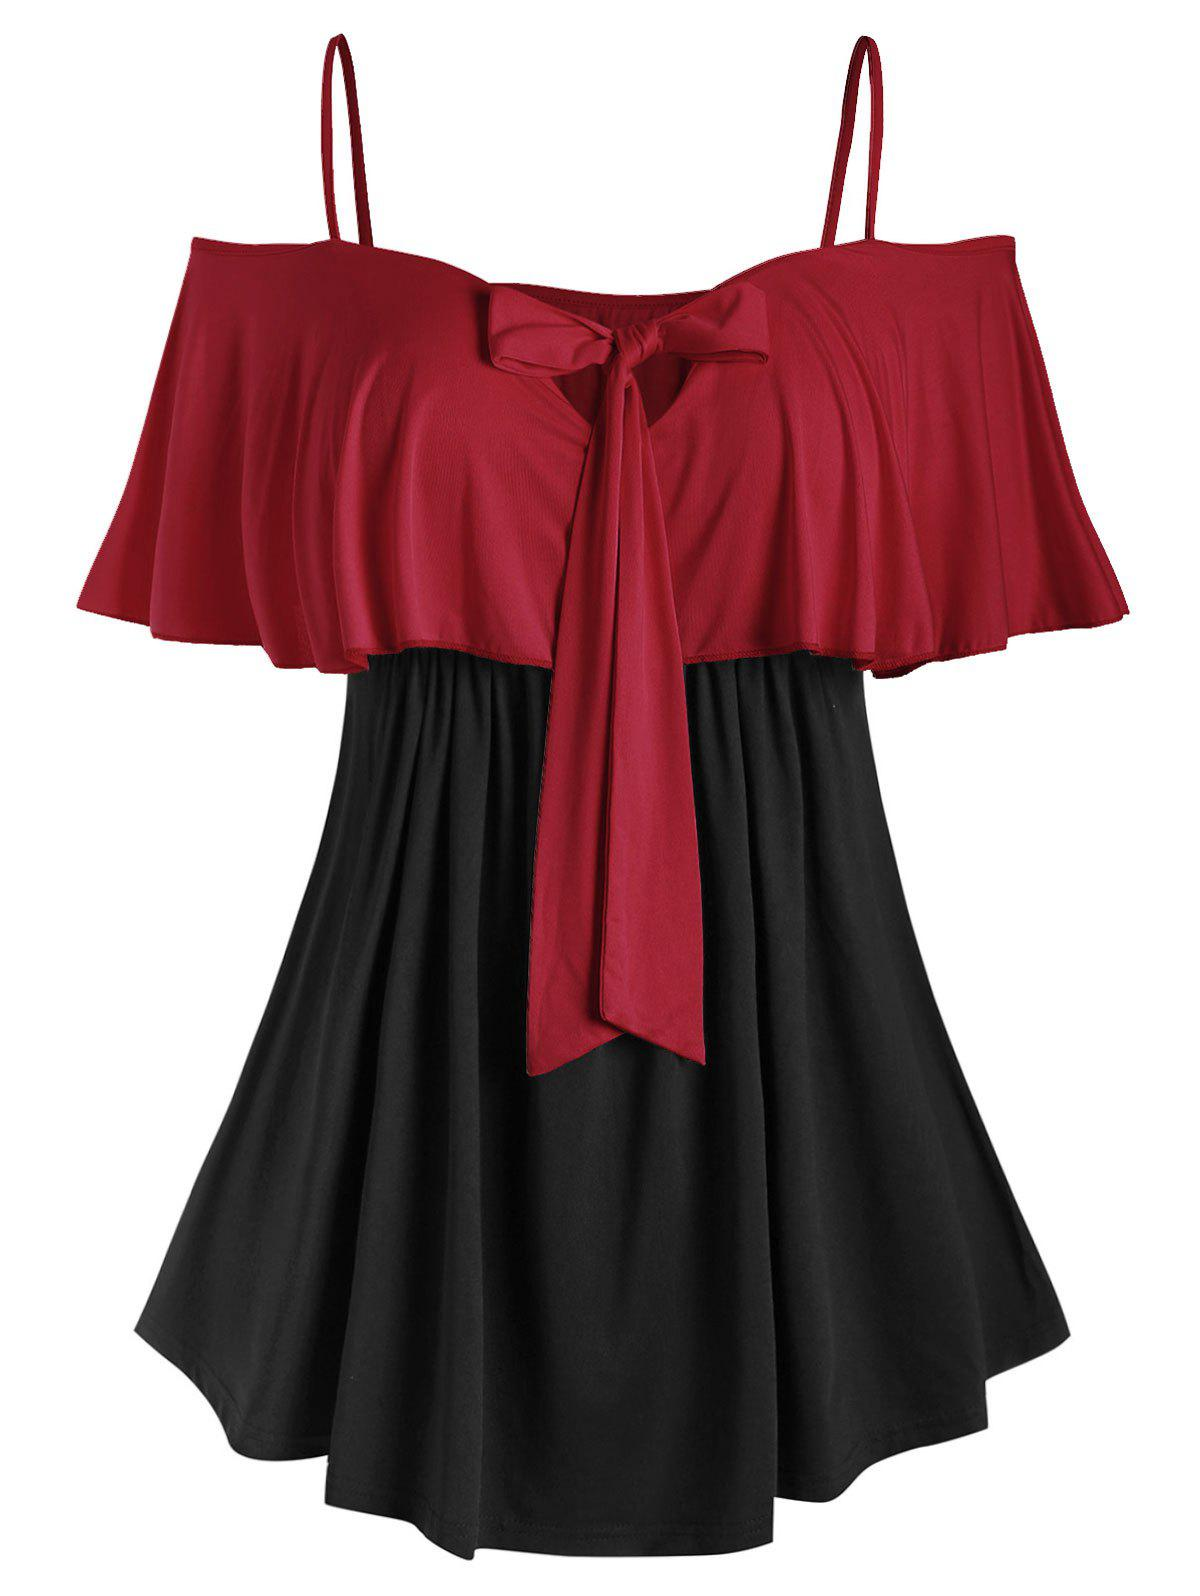 Plus Size Bowknot Ruffled Colorblock T Shirt - RED WINE L